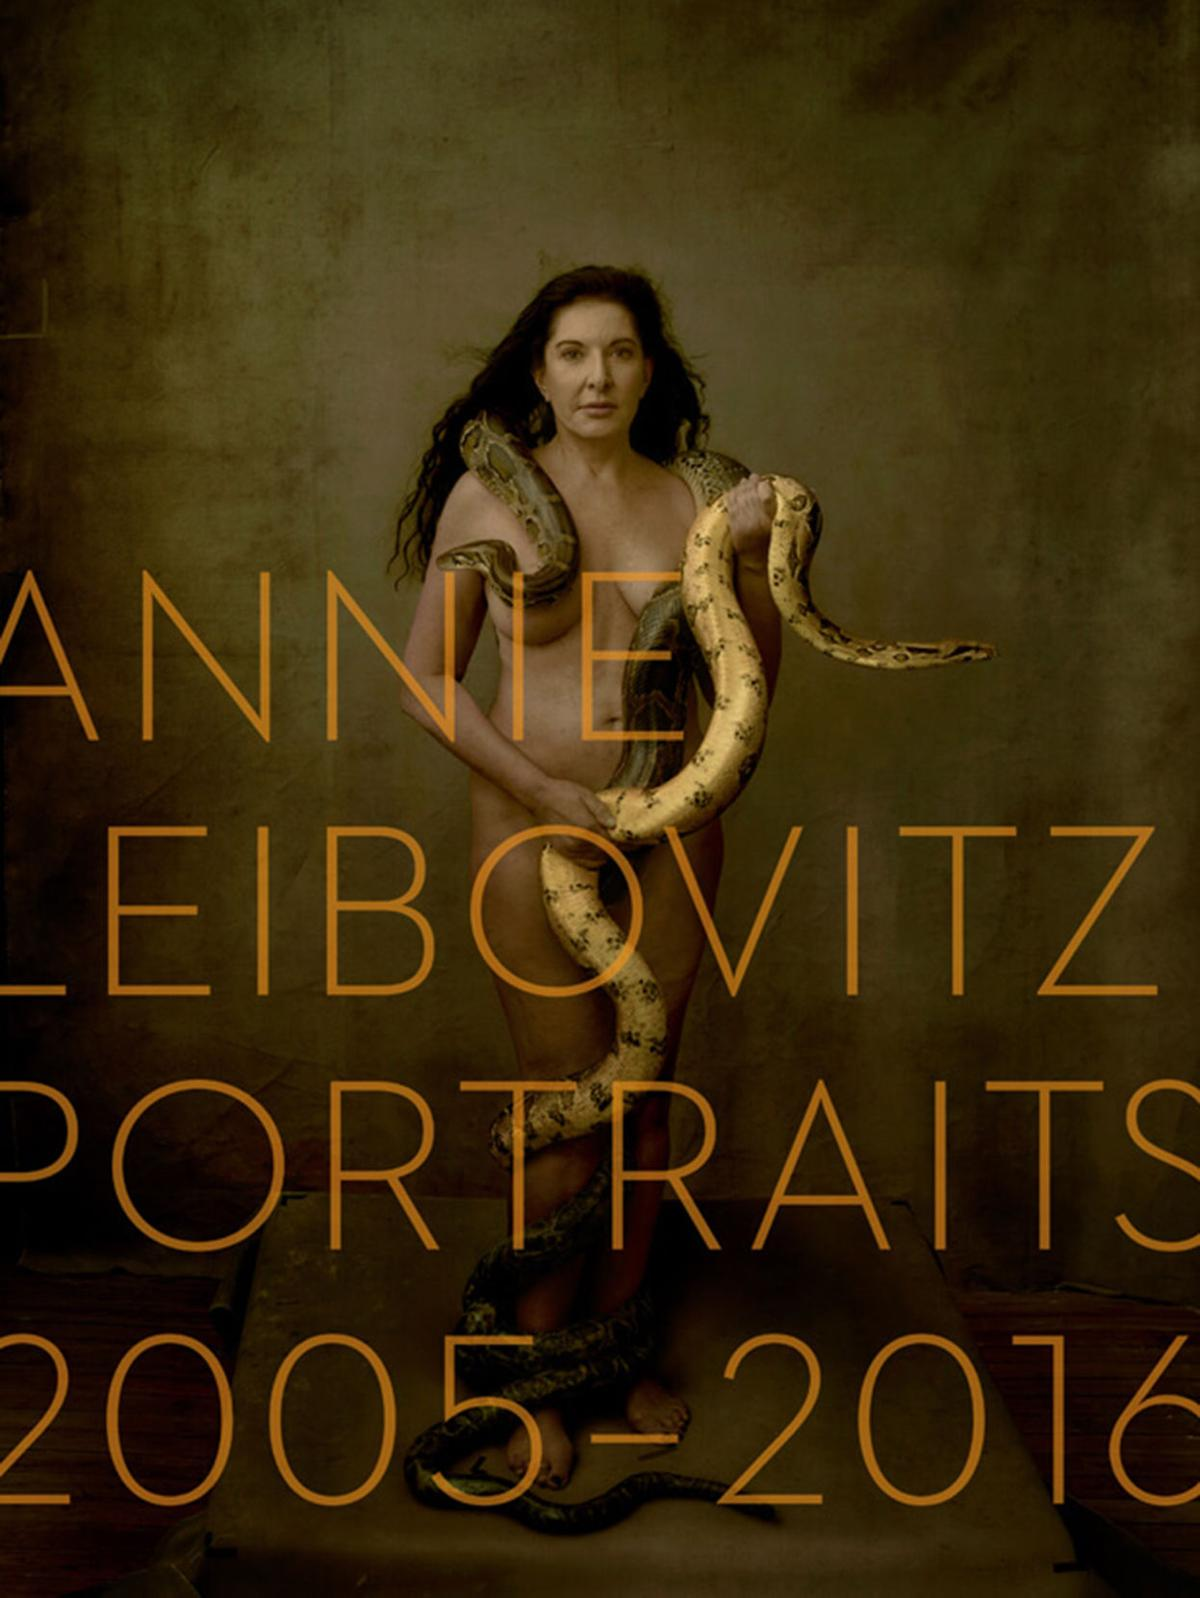 Film 4 Tonight >> Annie Leibovitz captures the spirit of our times in her iconic photographs | Books | missoulian.com